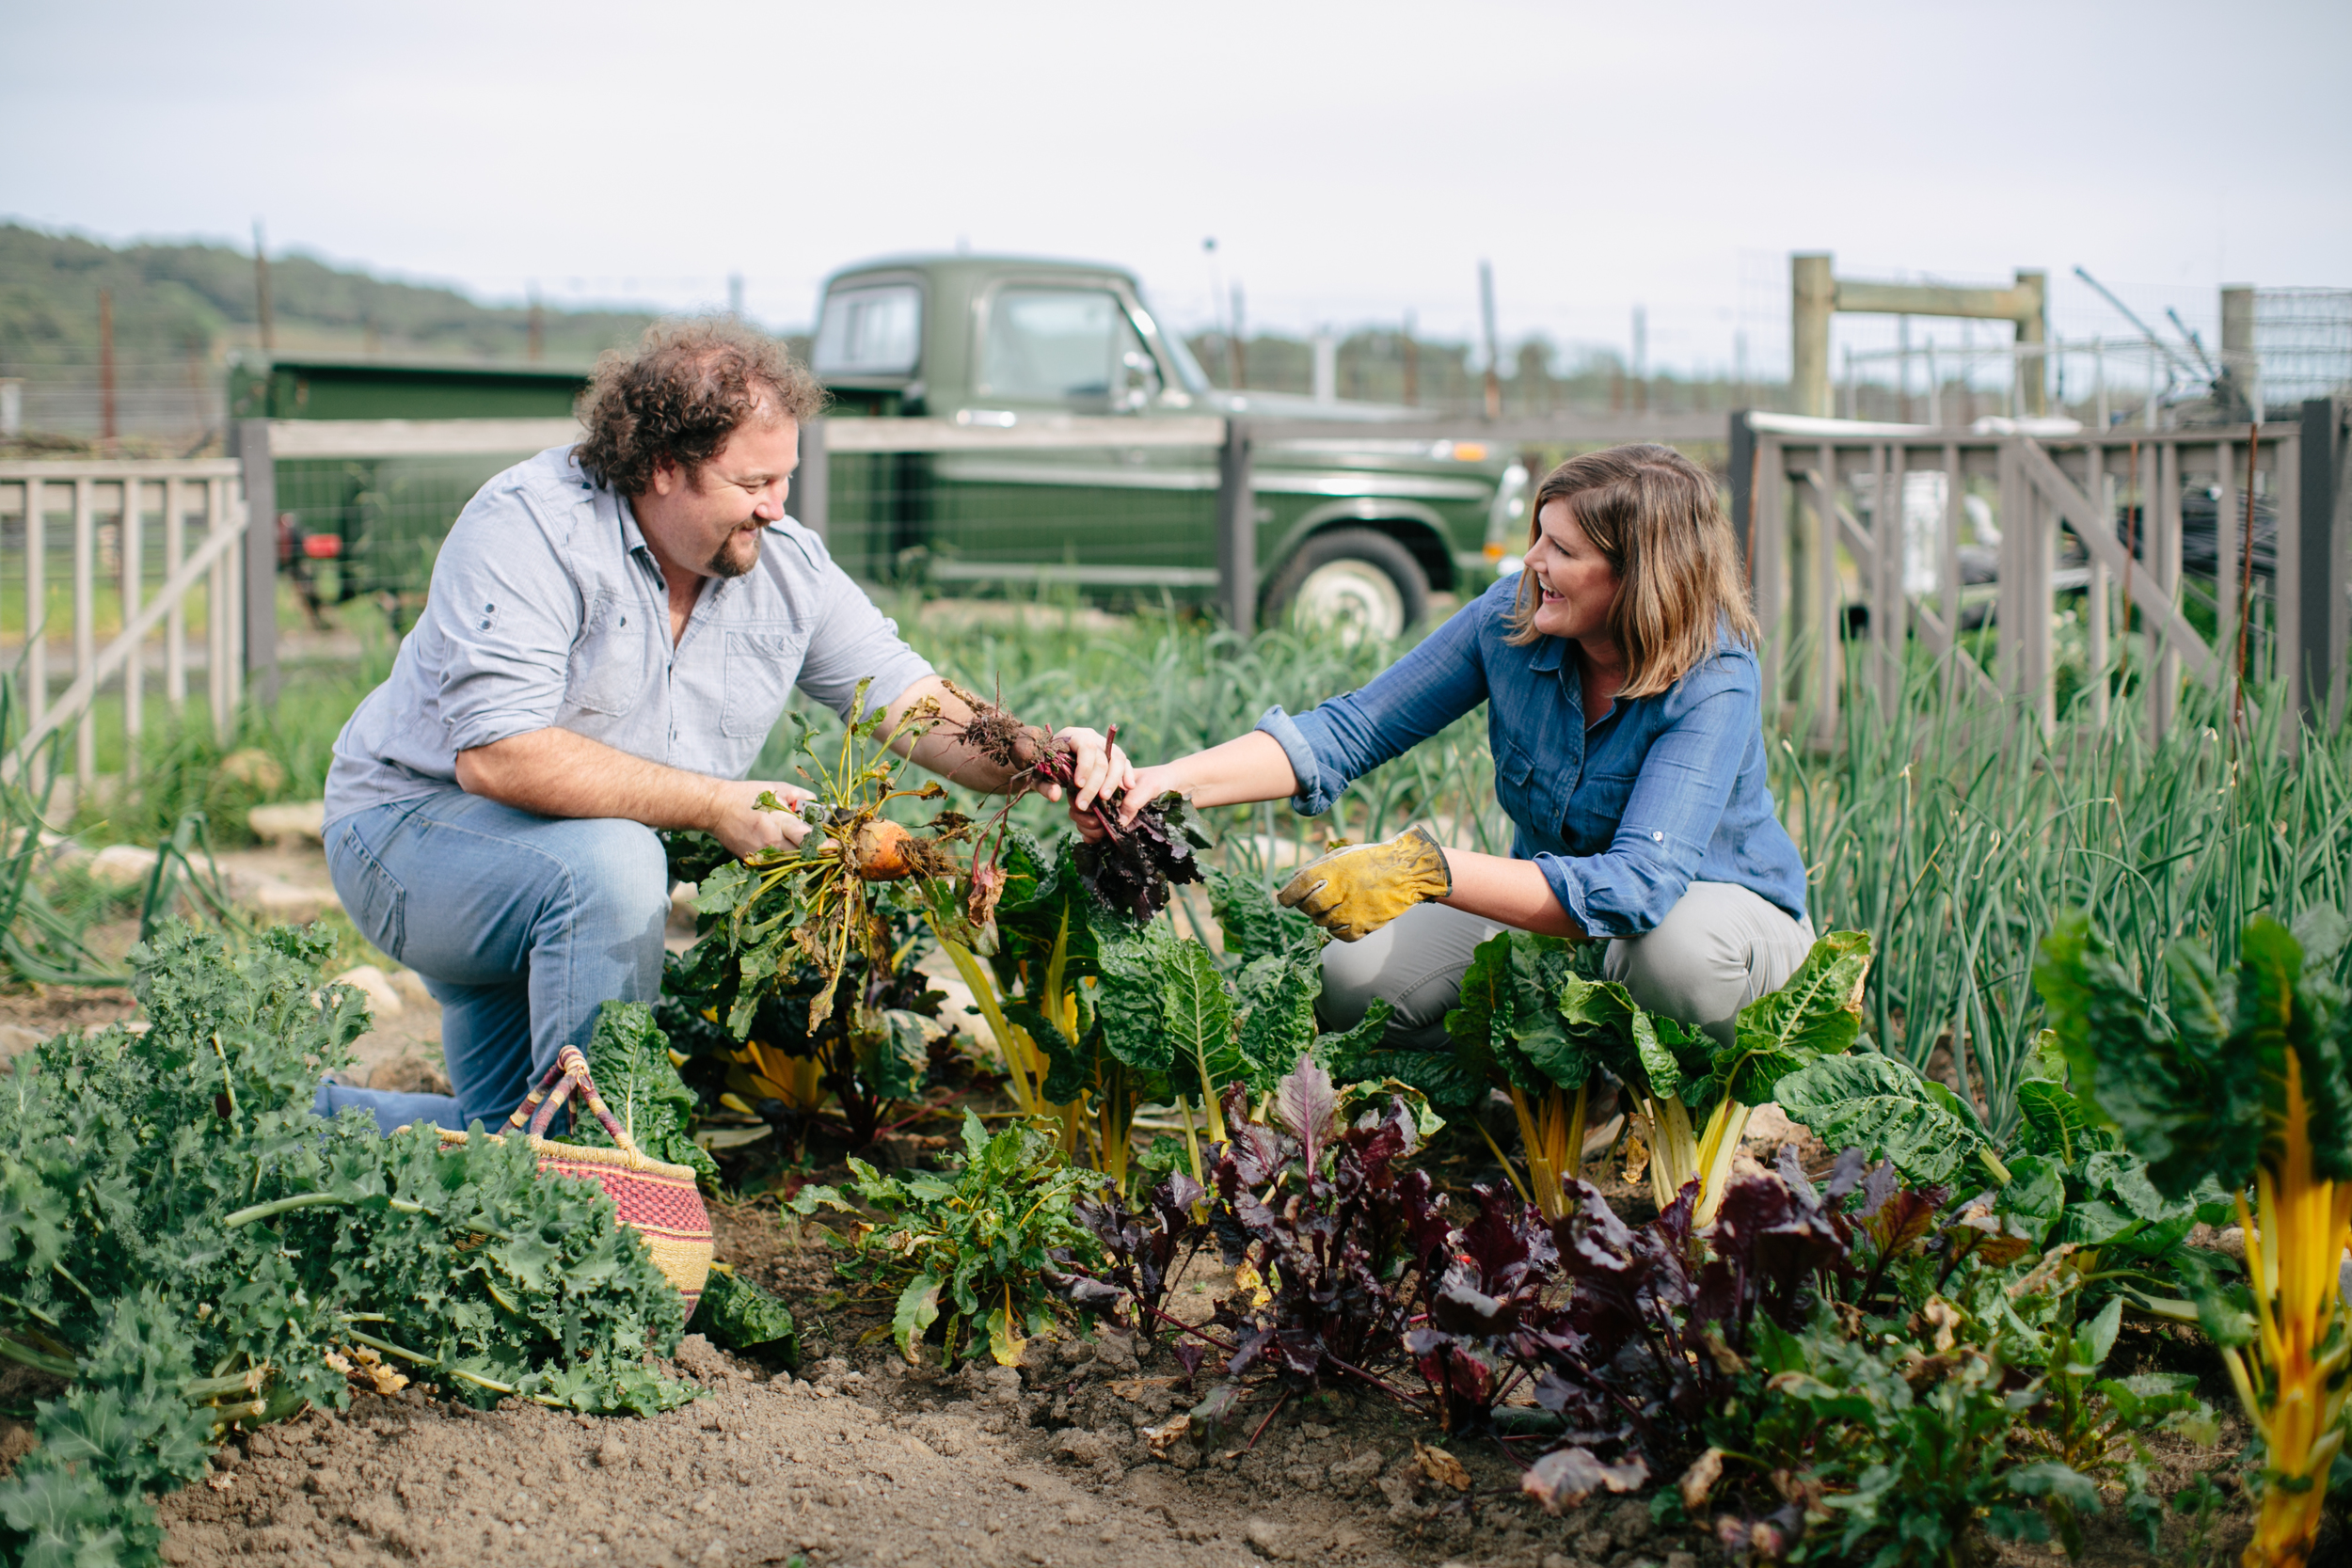 Farm to Table is our family's passion